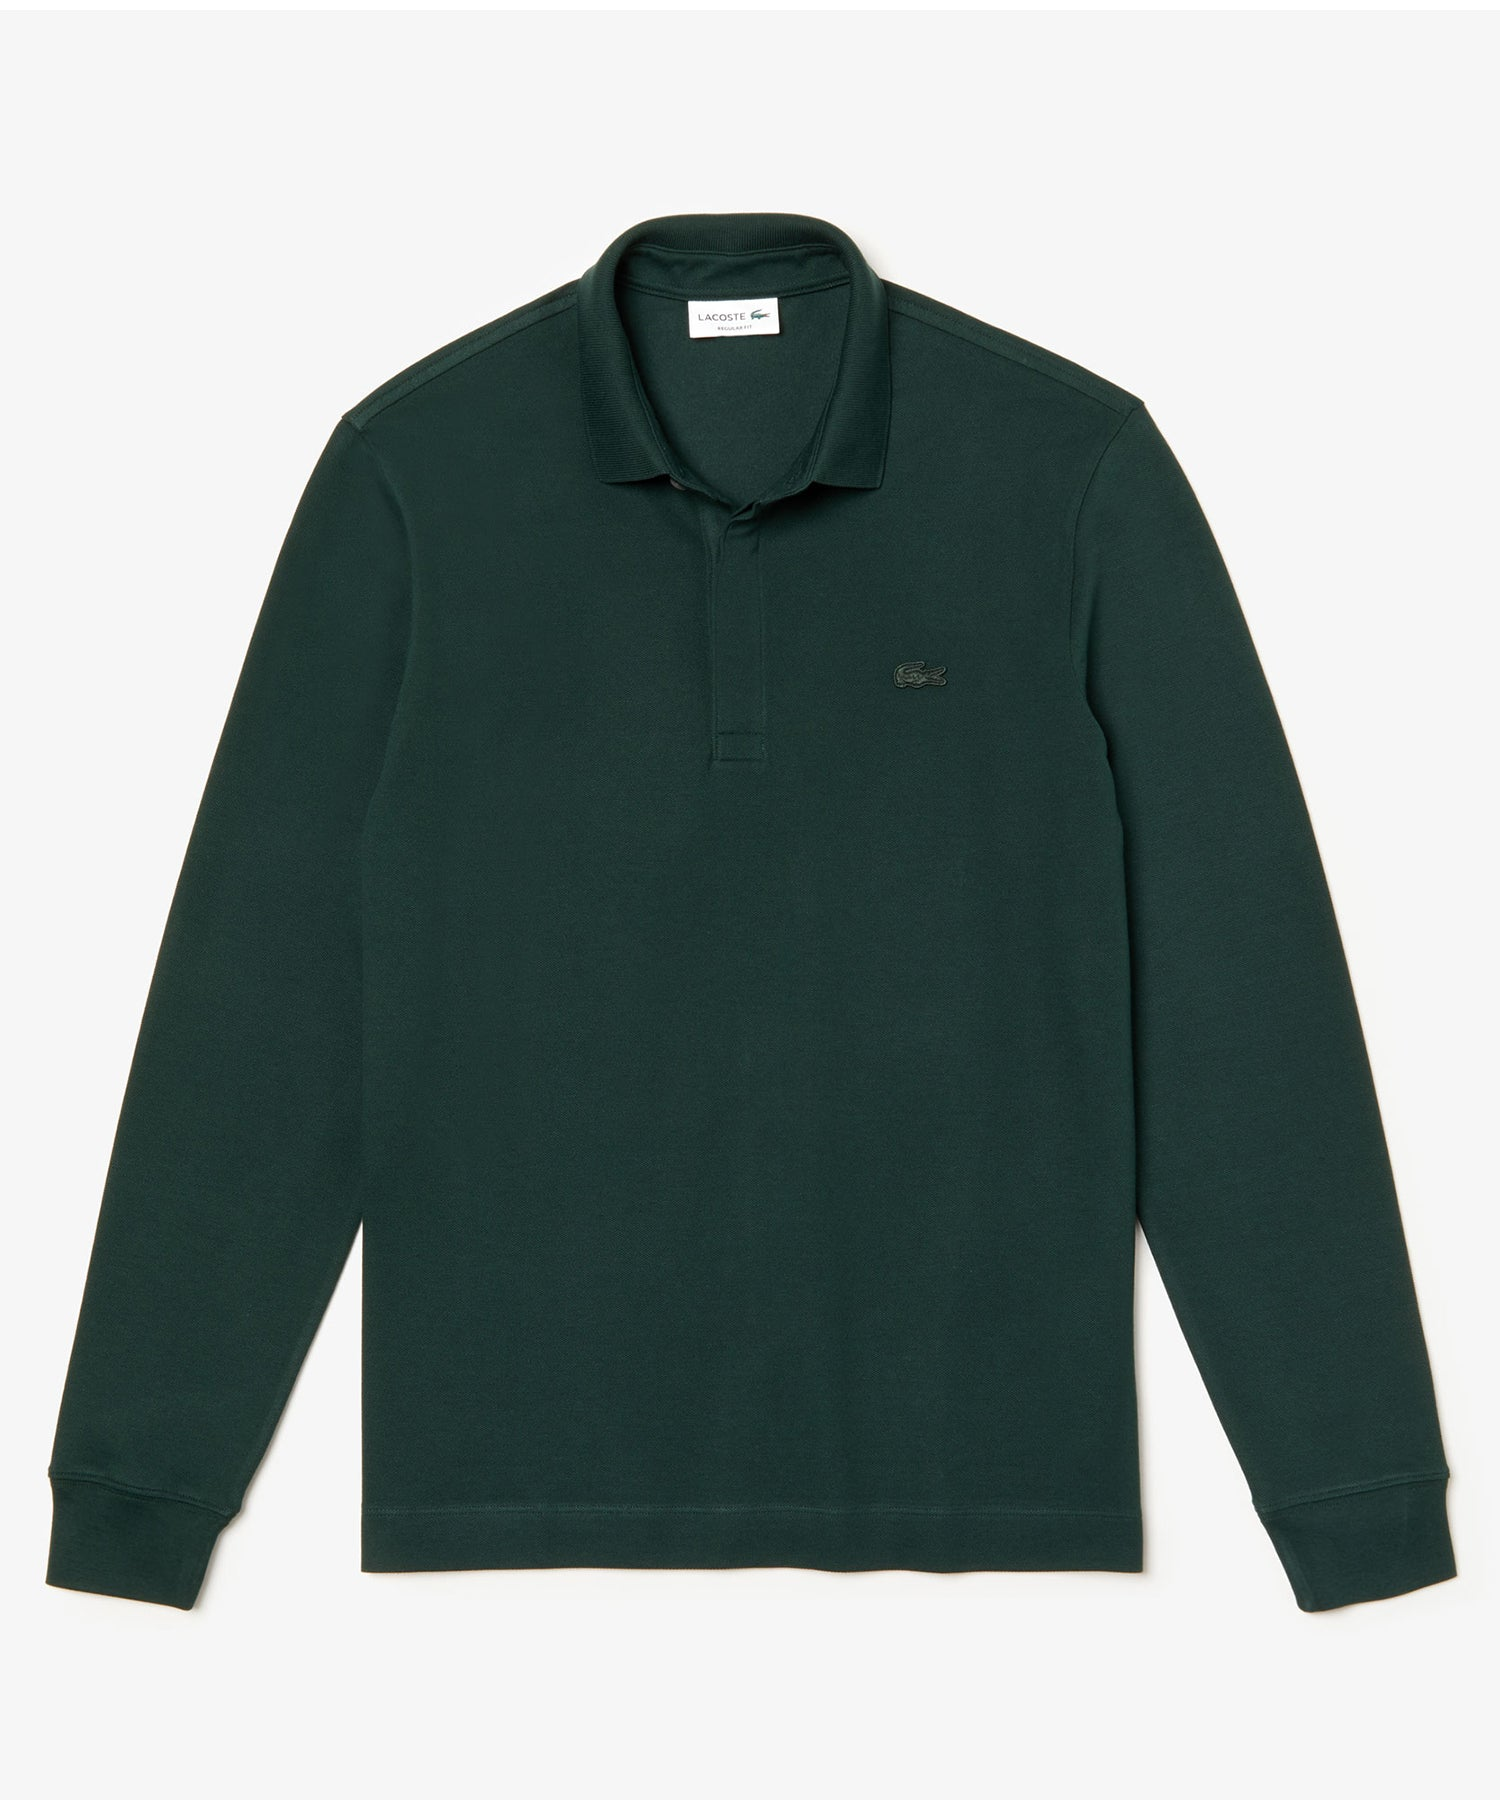 Lacoste Regular Fit Long-Sleeve Cotton Paris Polo in Green